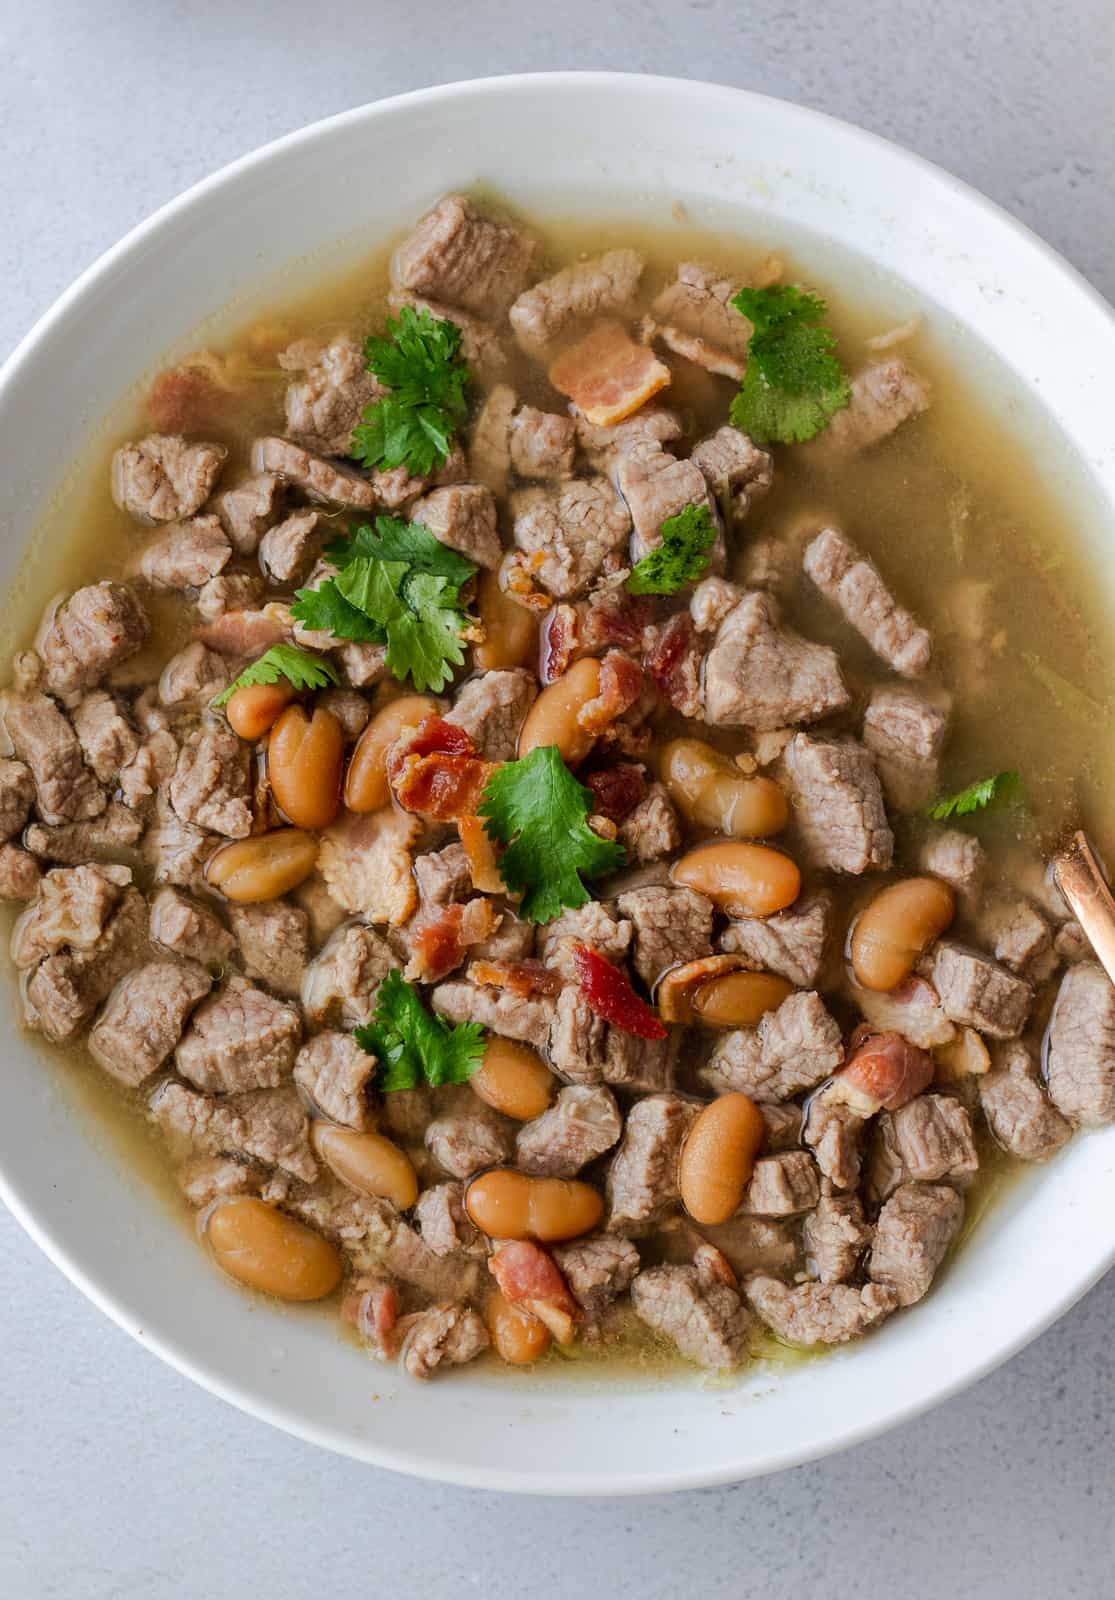 Overhead view of carne en su jugo in a white bowl, topped with beans, bacon bits, and cilantro.